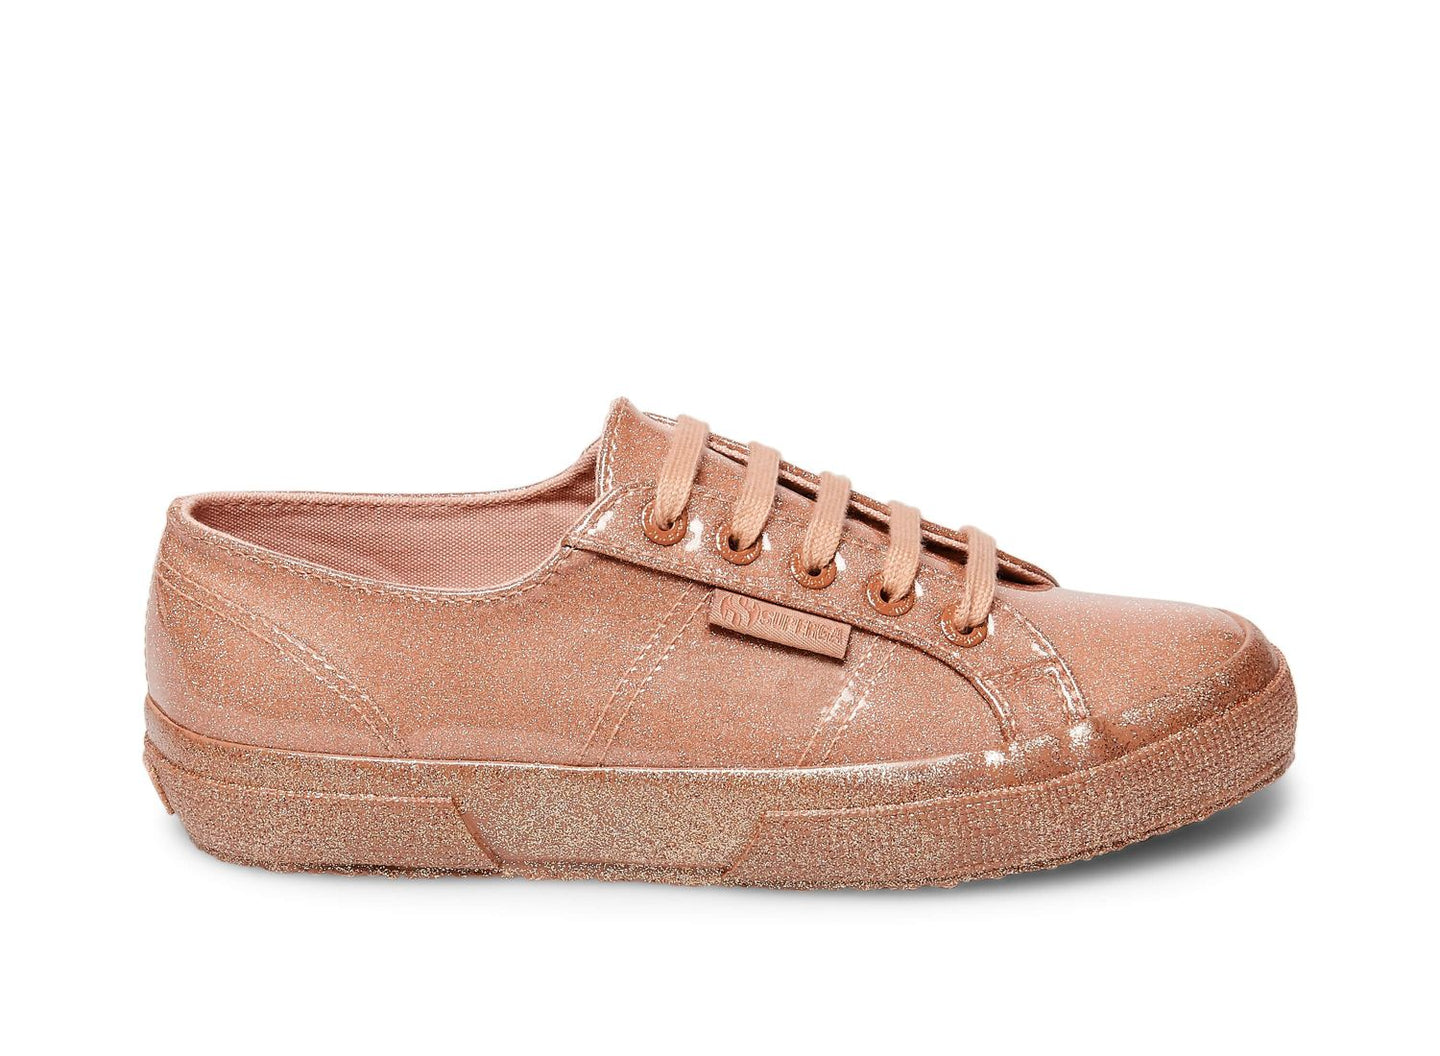 2750 GLITTERPATENTW ROSE GOLD -